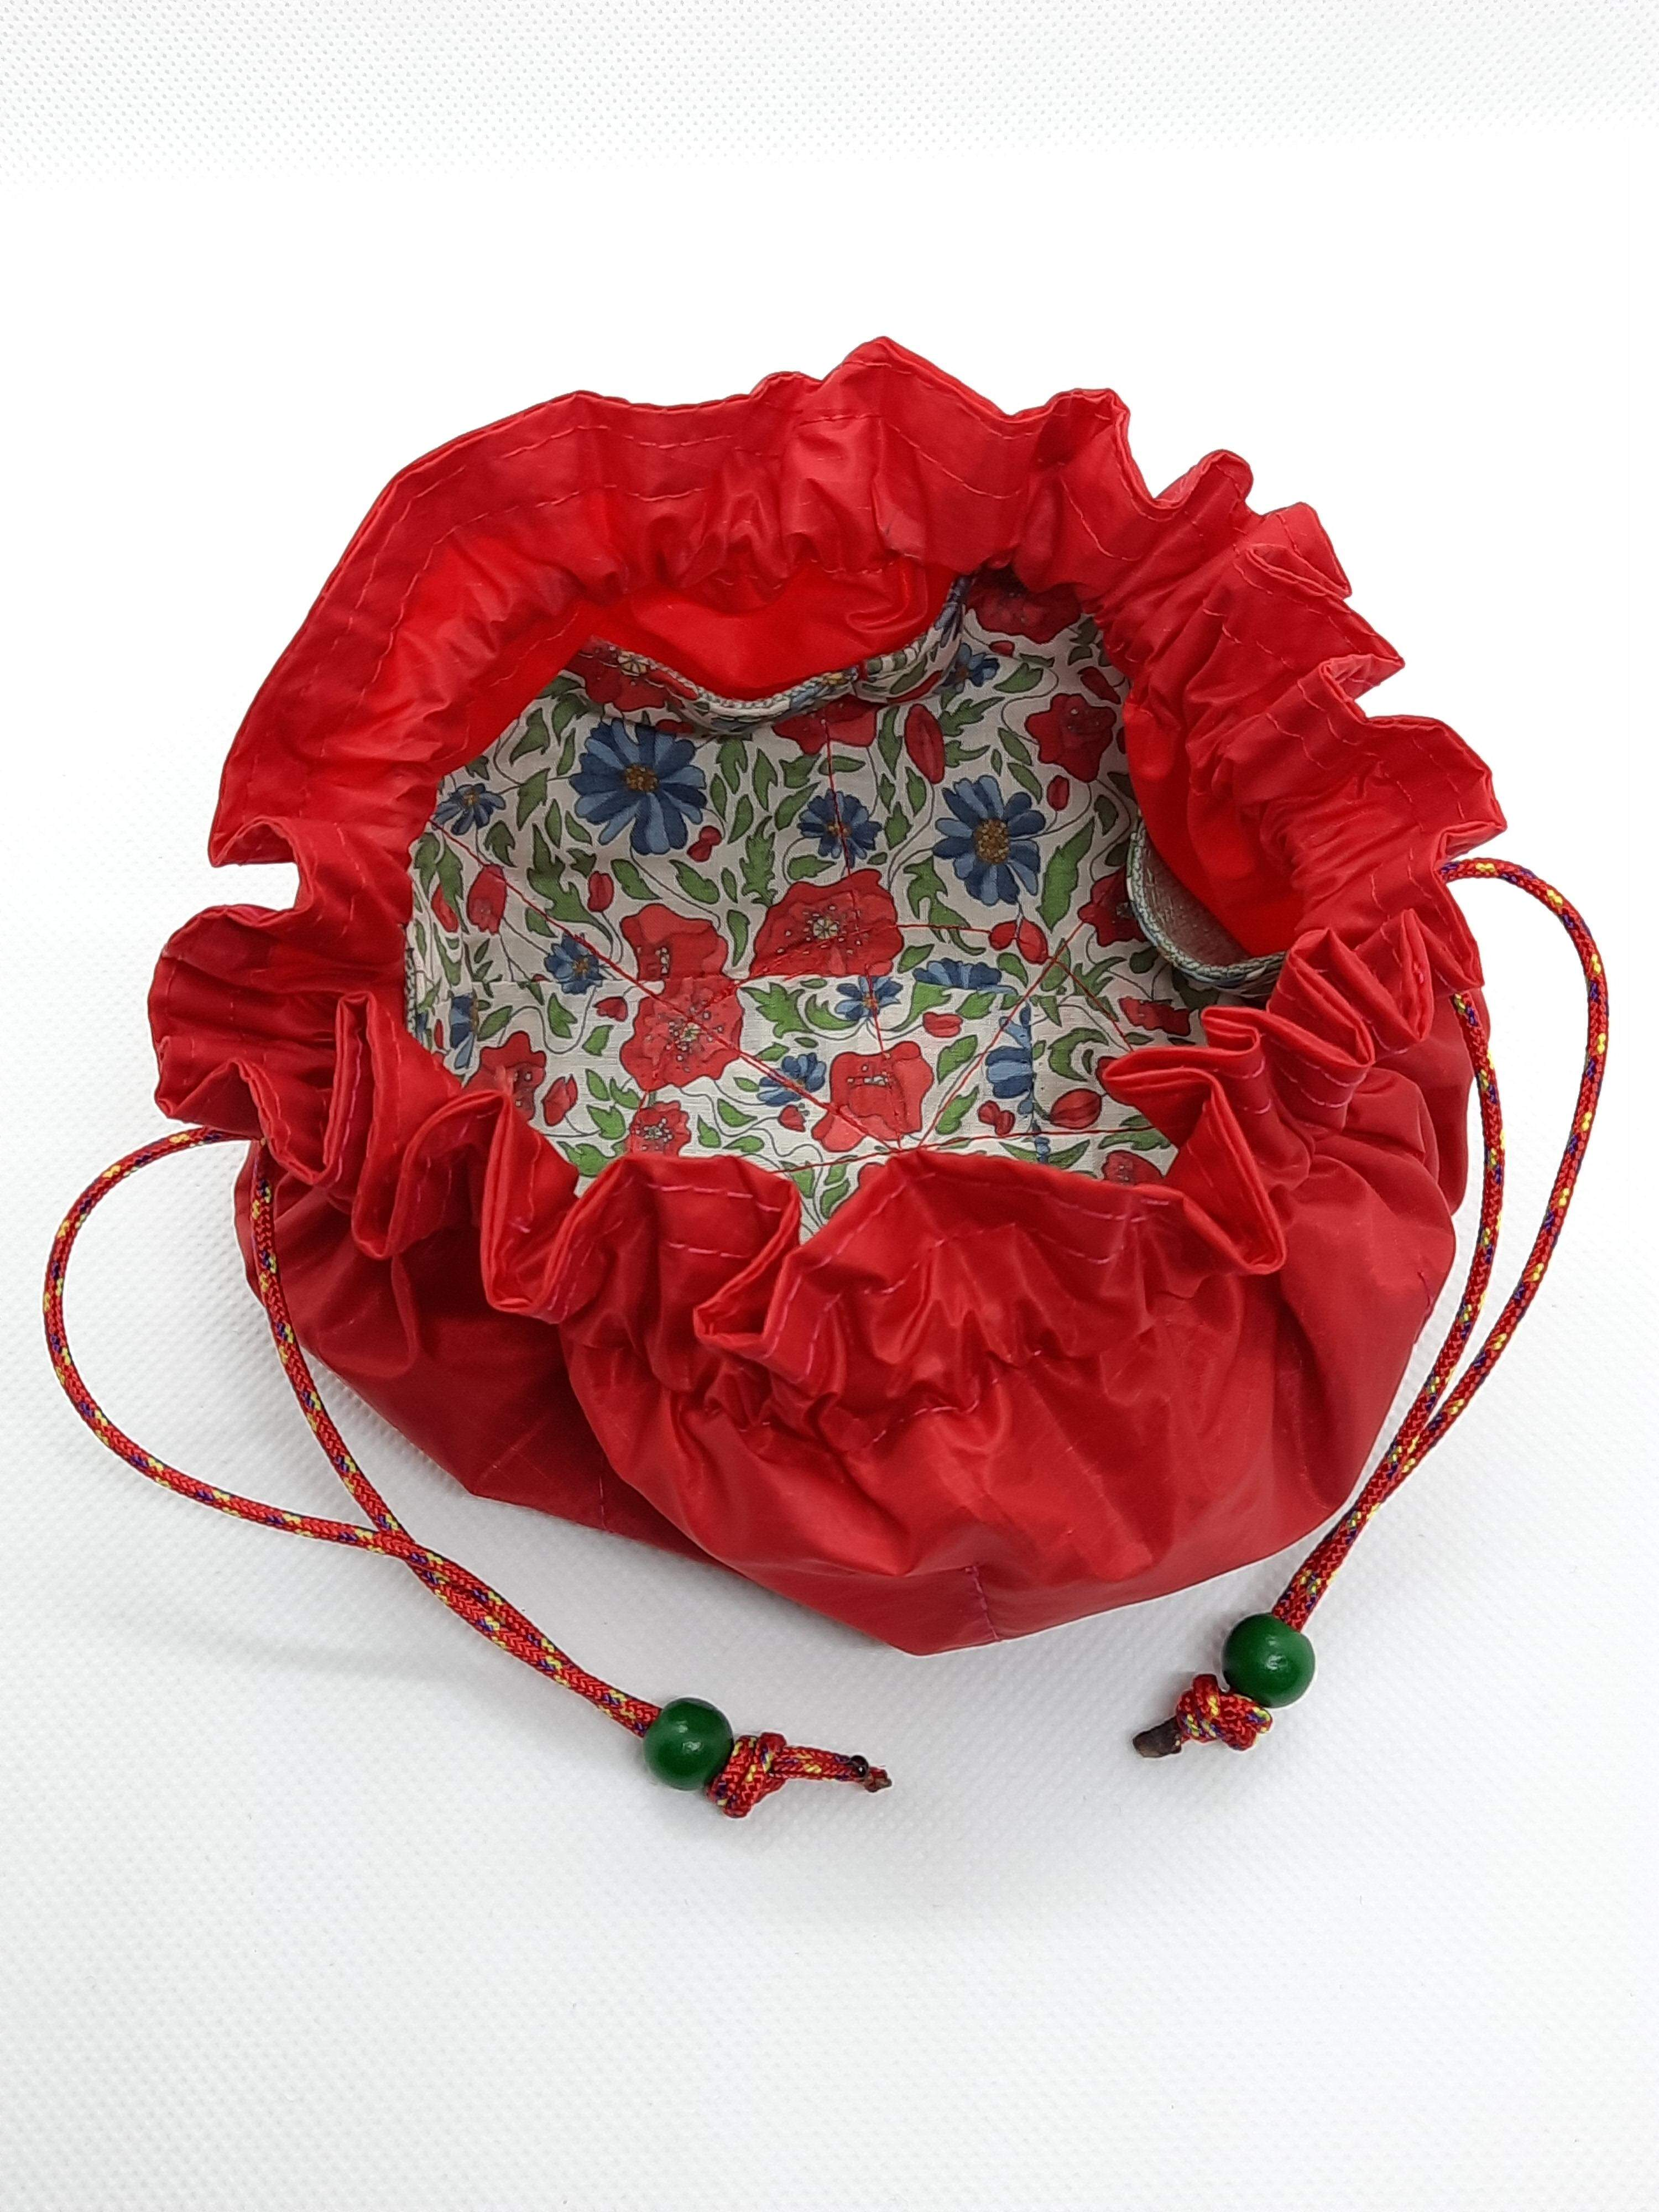 Jewellery Pouch from spinnaker cloth, red rope, green bead